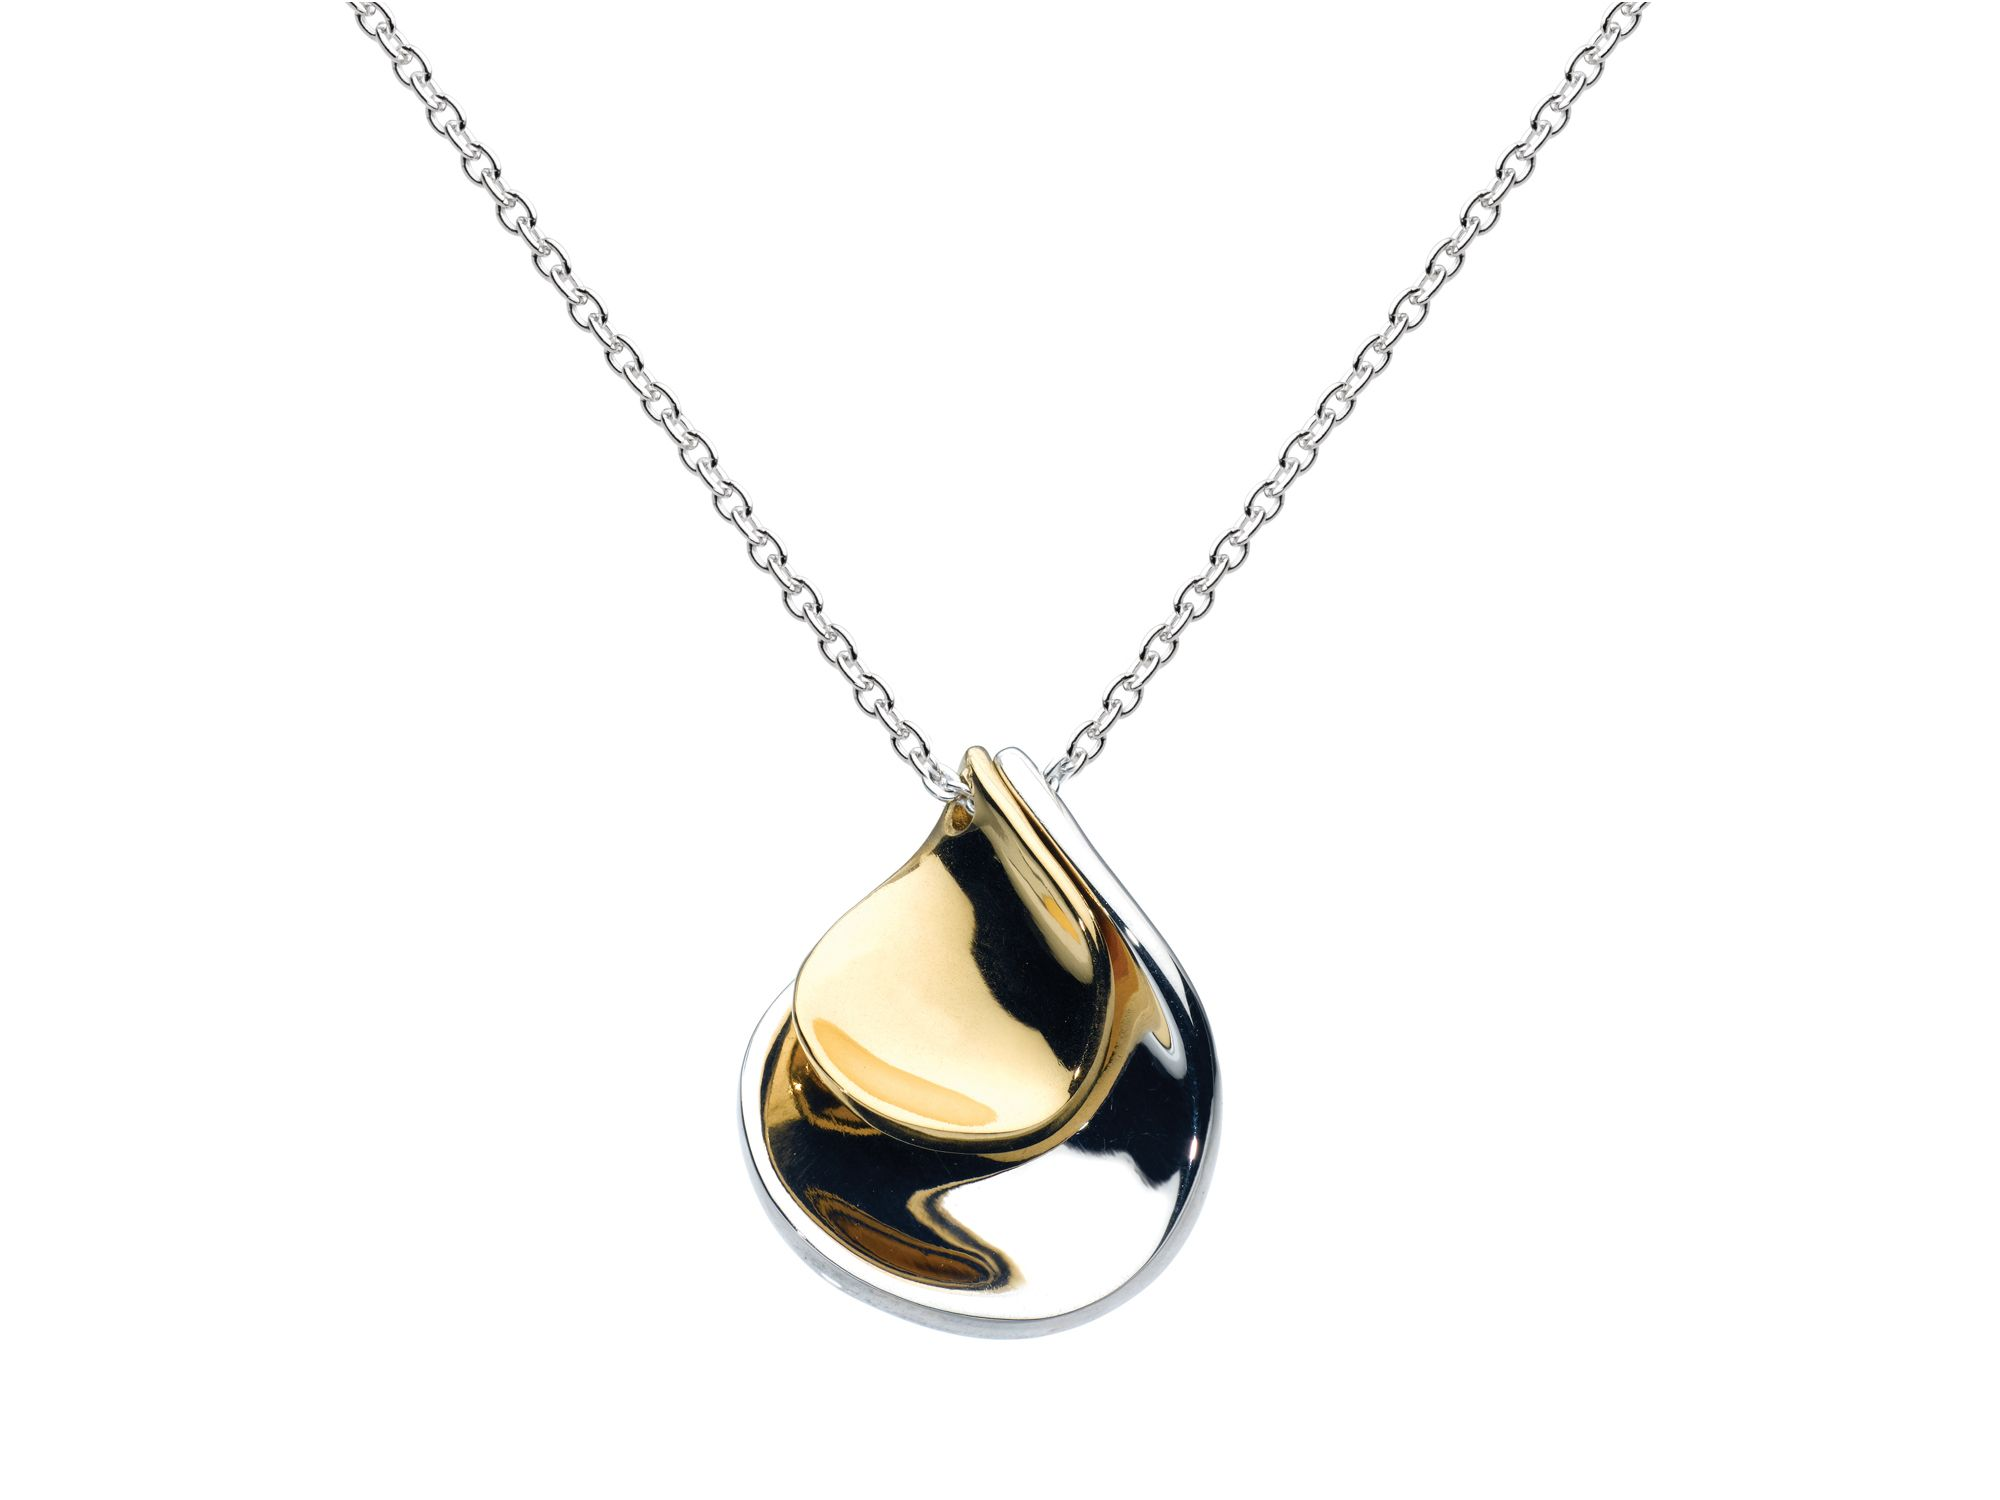 Sterling siver and 18ct gold plate petal necklace